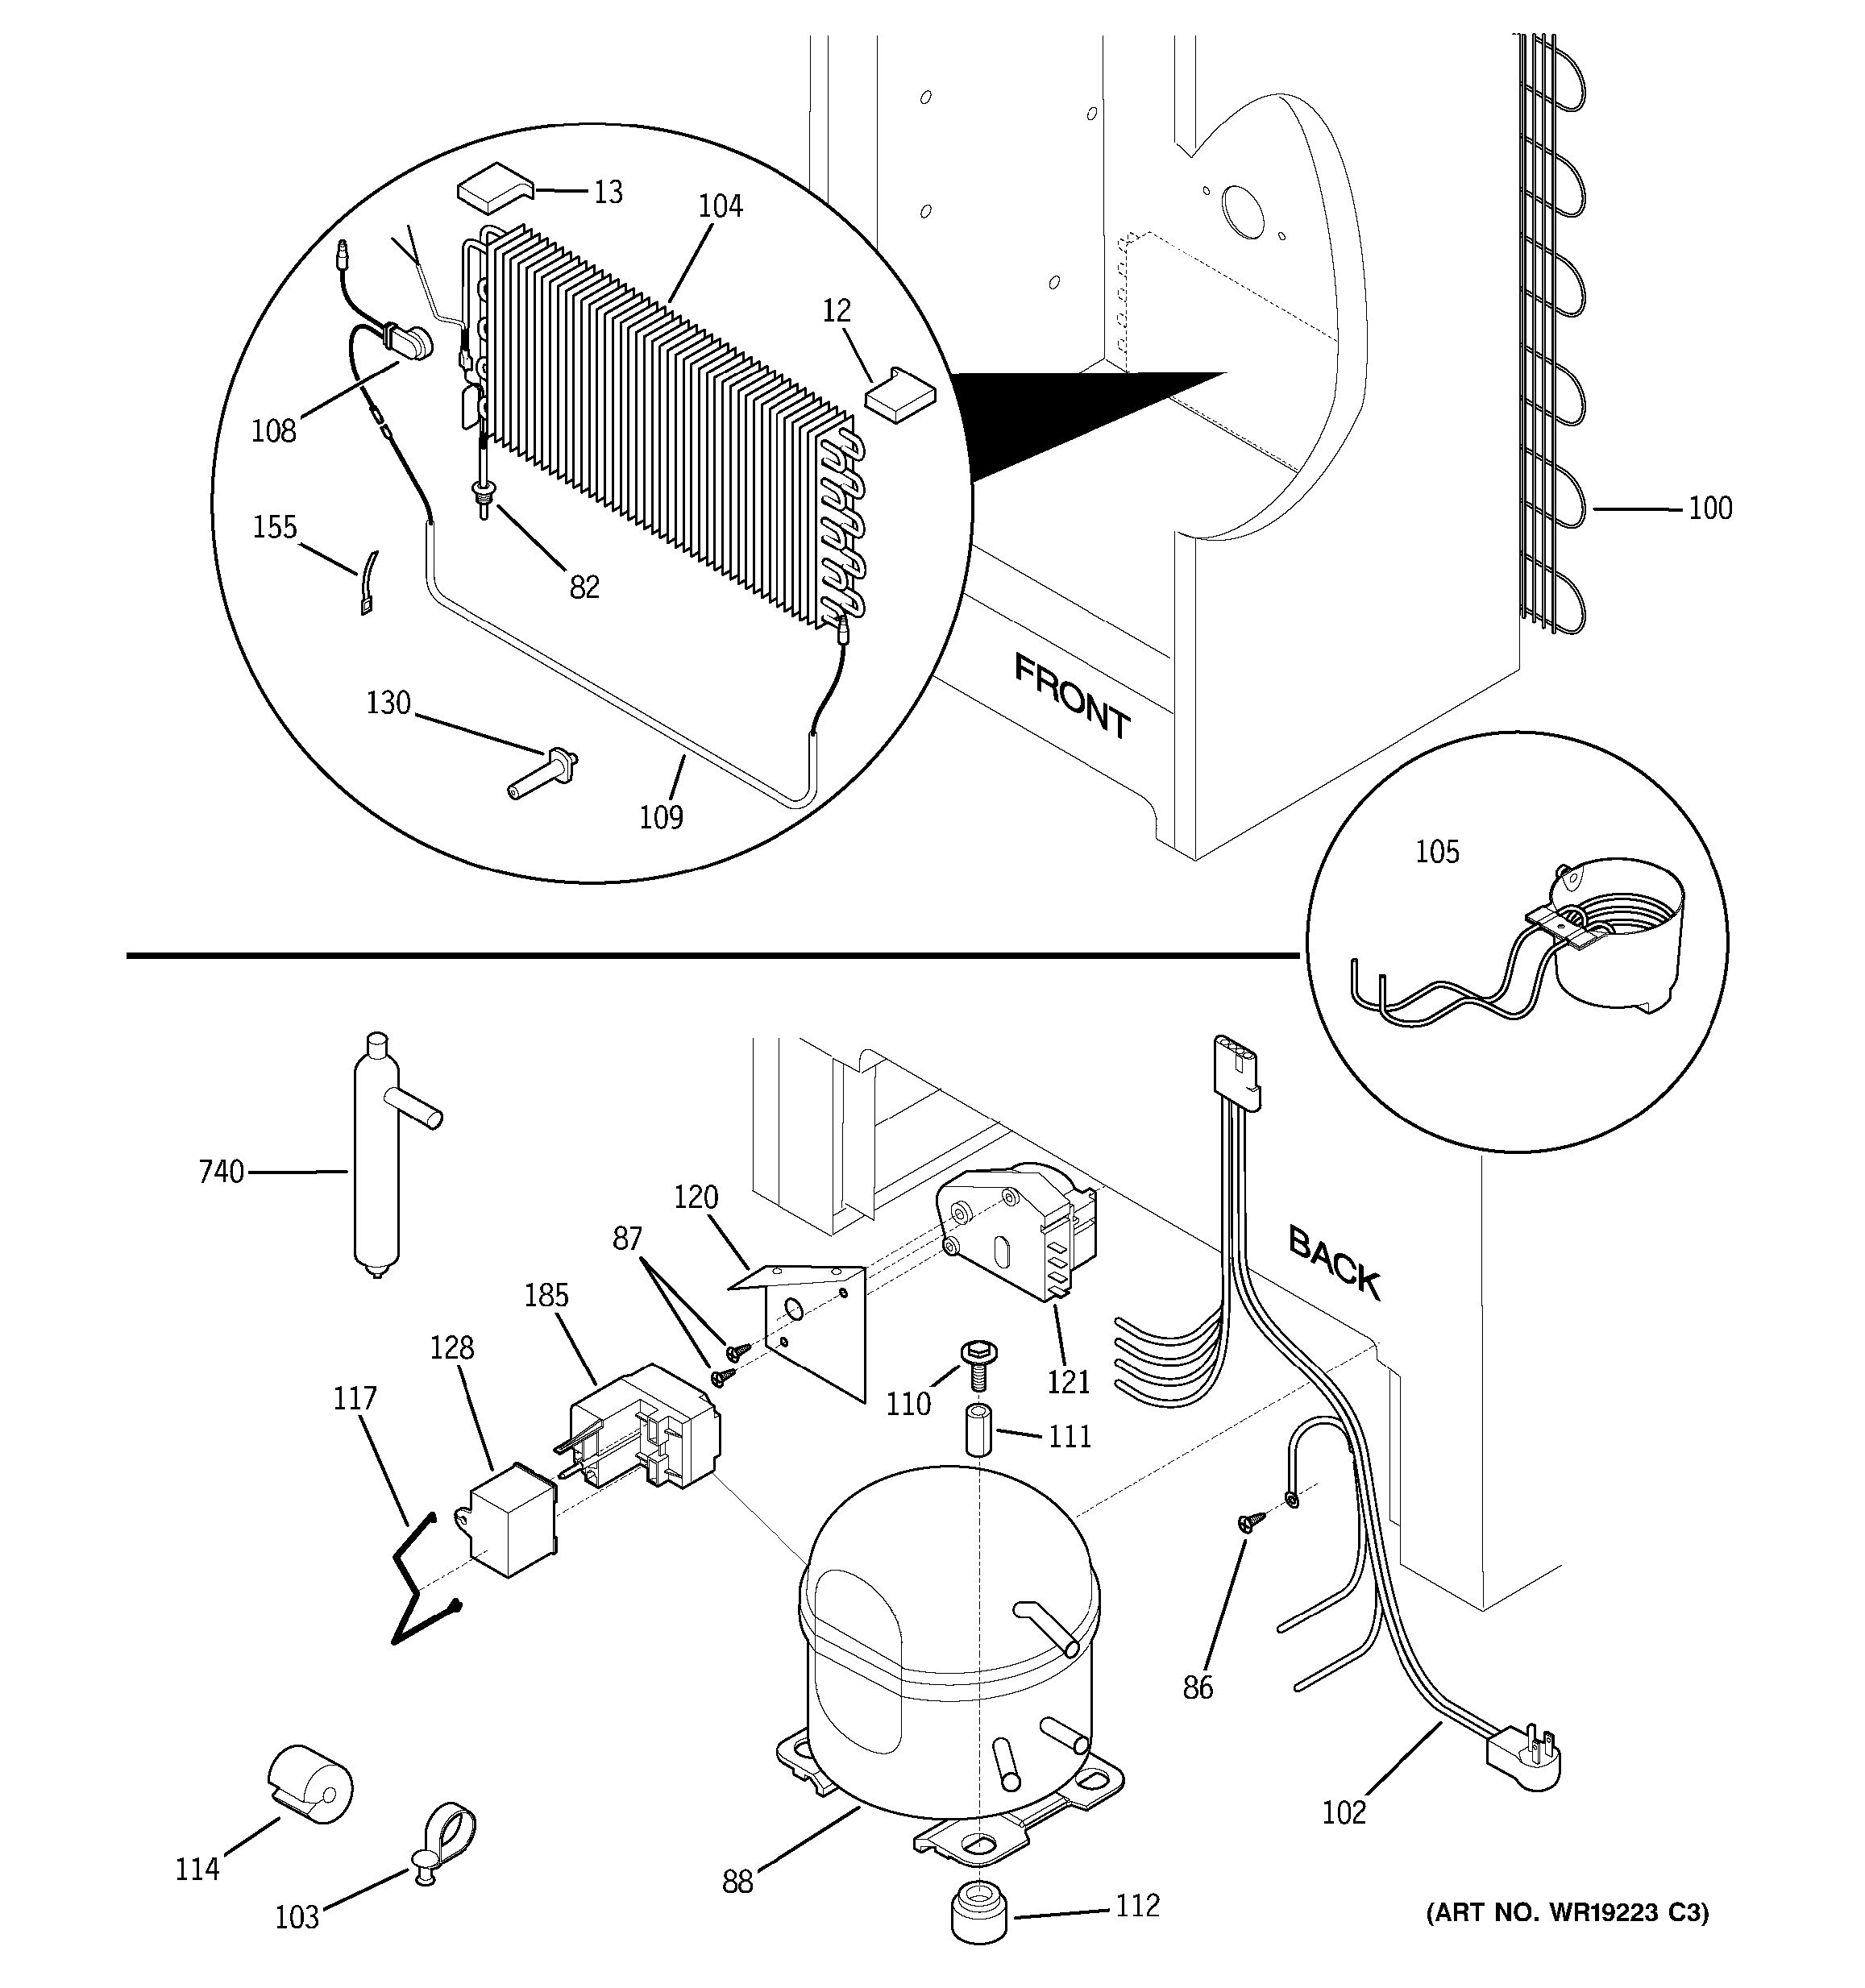 coleman evcon thermostat wiring diagram coleman coleman evcon thermostat wiring diagram coleman wiring diagram on coleman evcon thermostat wiring diagram